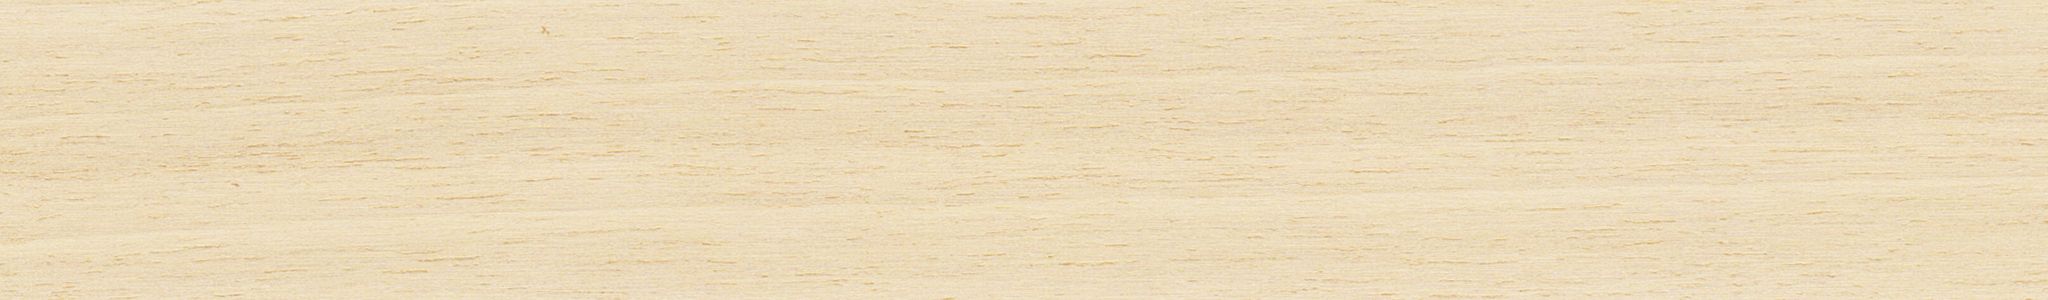 HD 78210 Veneer Edge Anegre Fleece